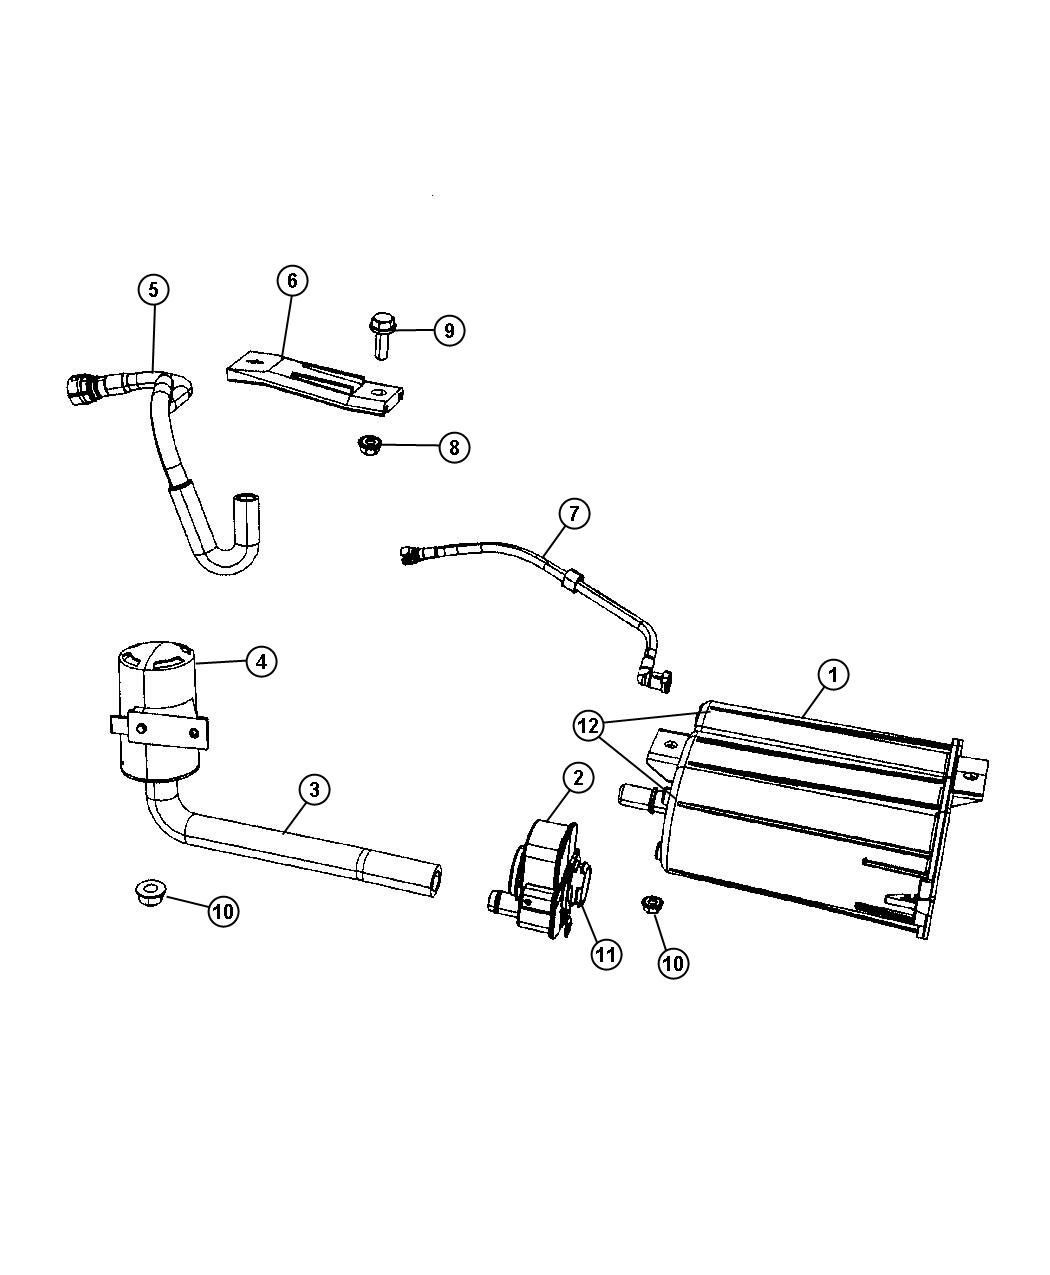 2007 Jeep Compass Vapor Canister and Leak Detection Pump